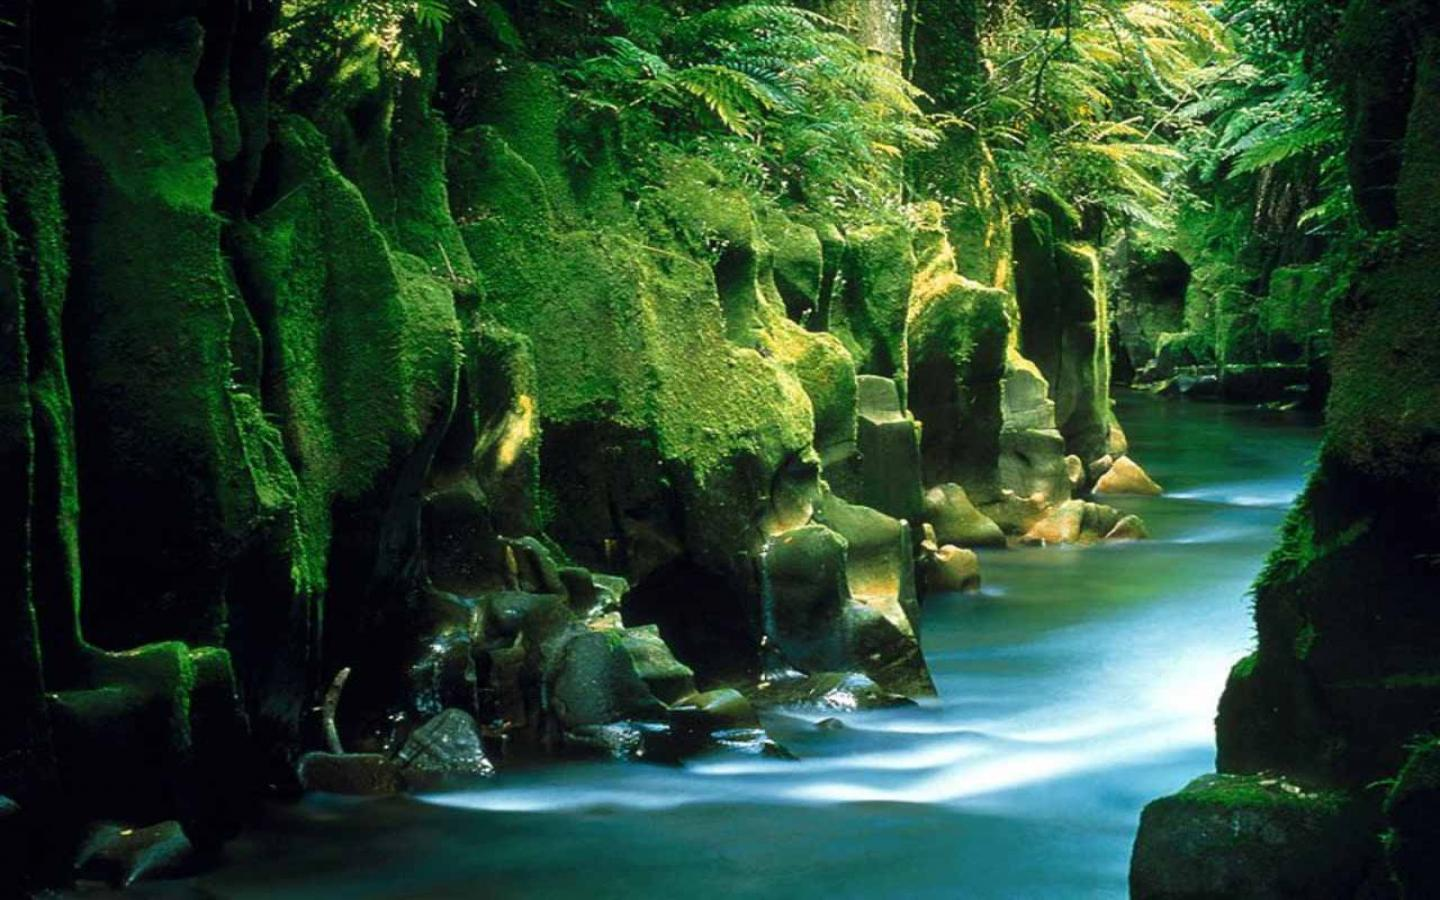 nature HD Wallpapers 1440x900 Nature Landscape Wallpapers 1440x900 1440x900